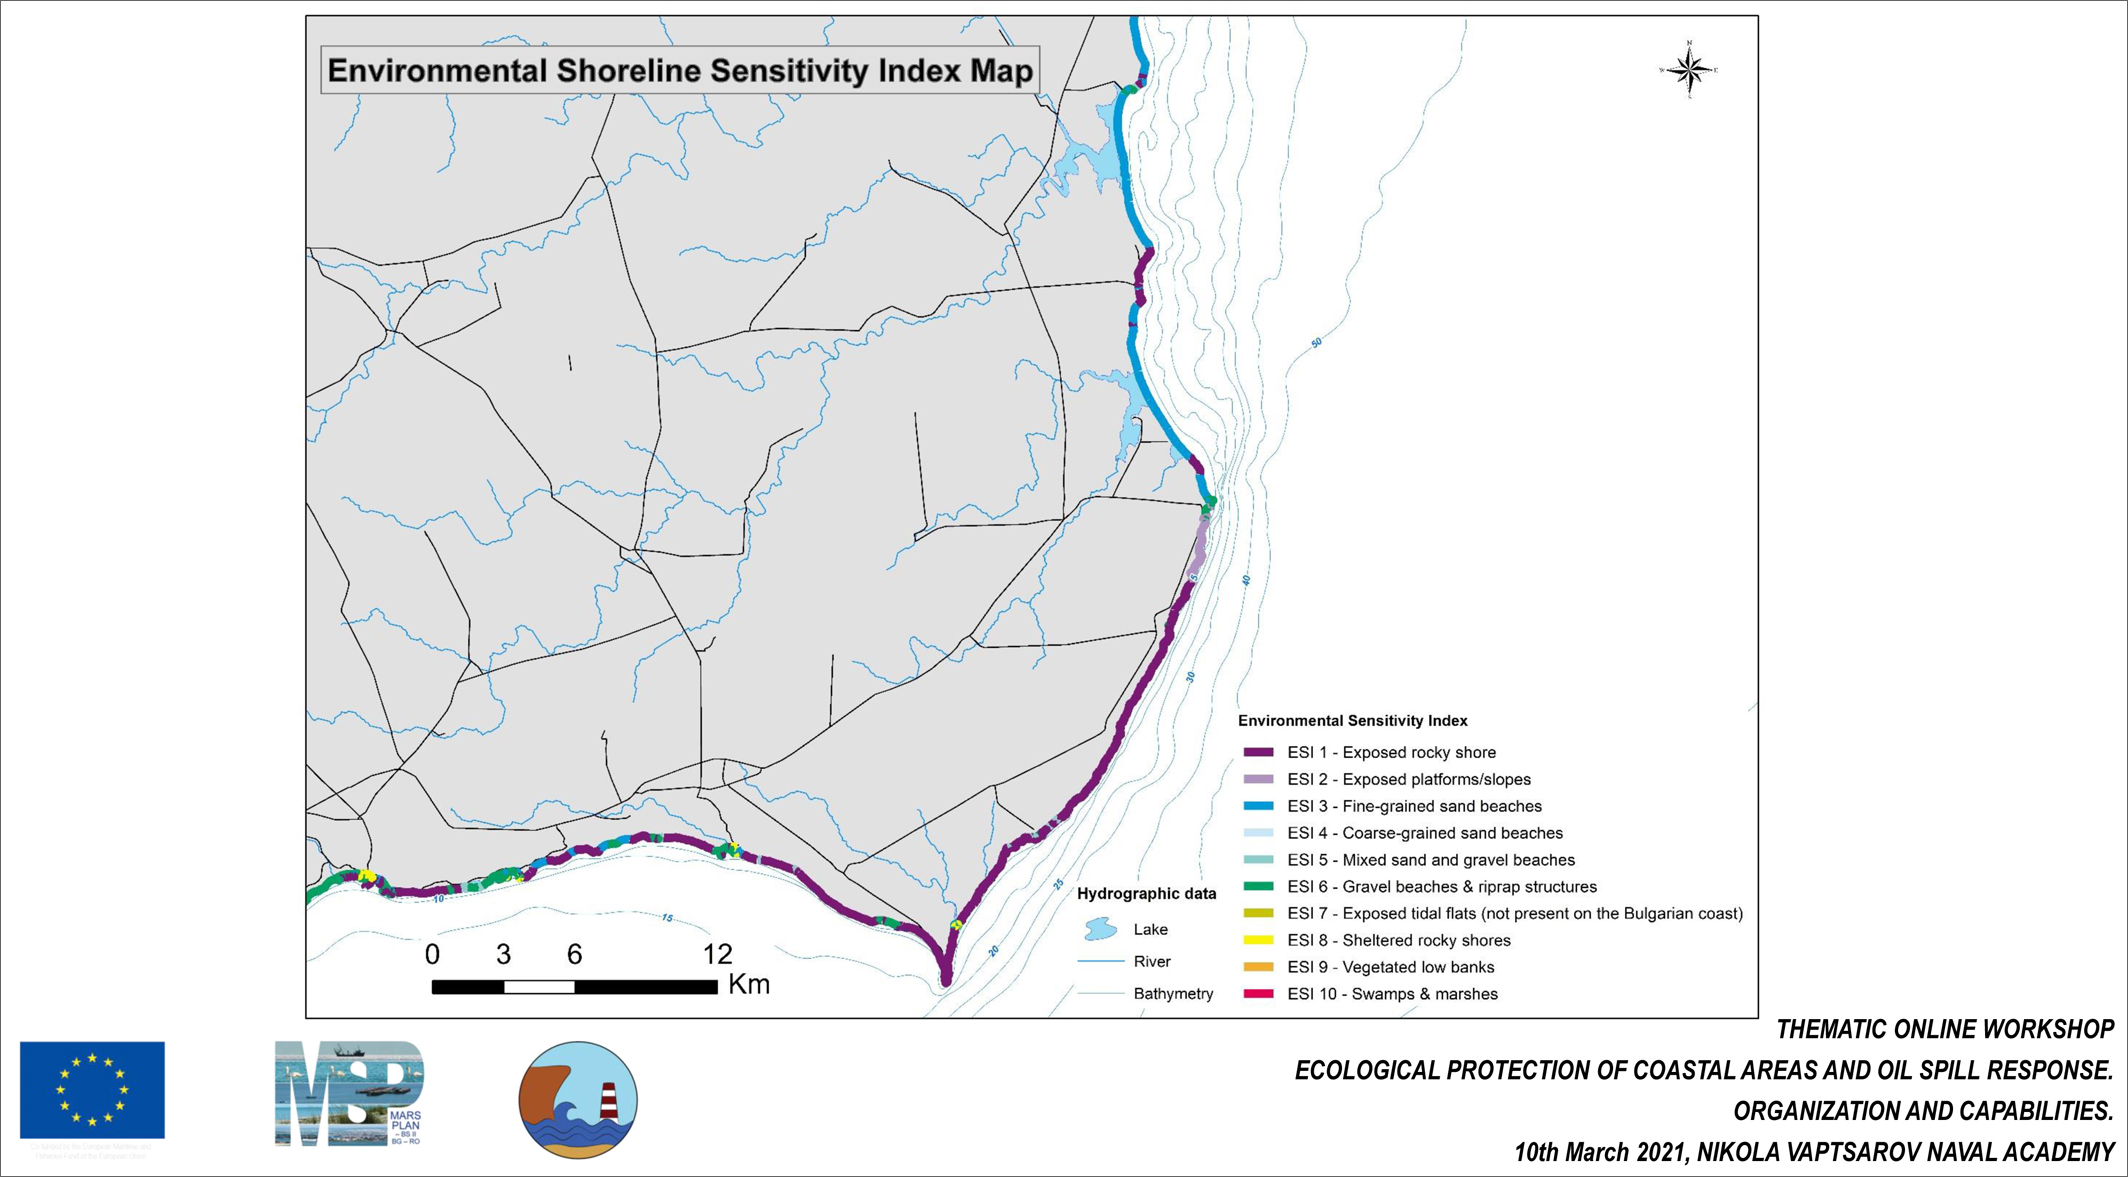 ESI Classification of Bulgarian Black Sea Shoreline in Response to Oil Spill